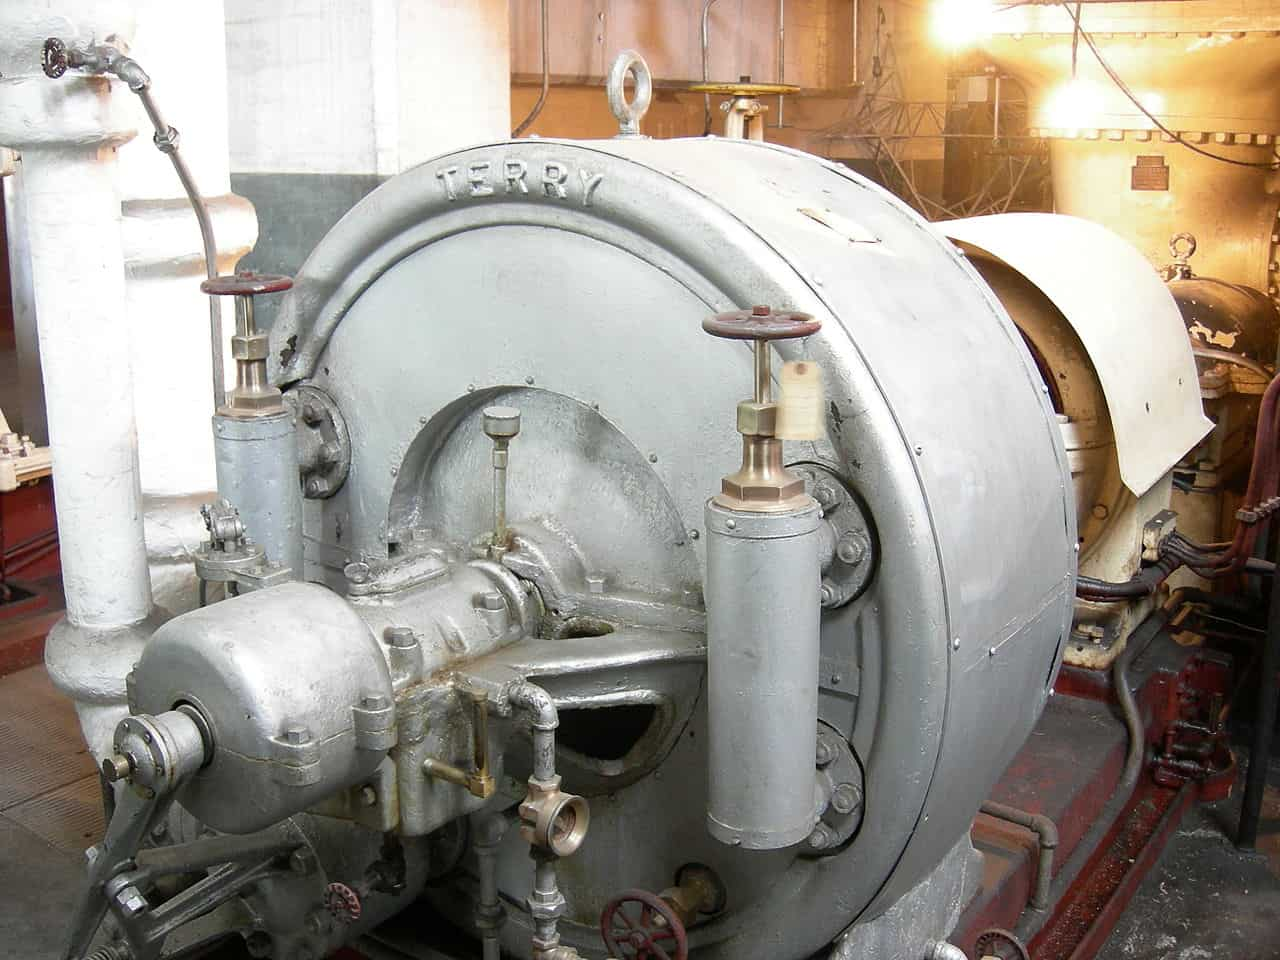 Westinghouse Steam Turbine via Joe Mabel on Wikimedia